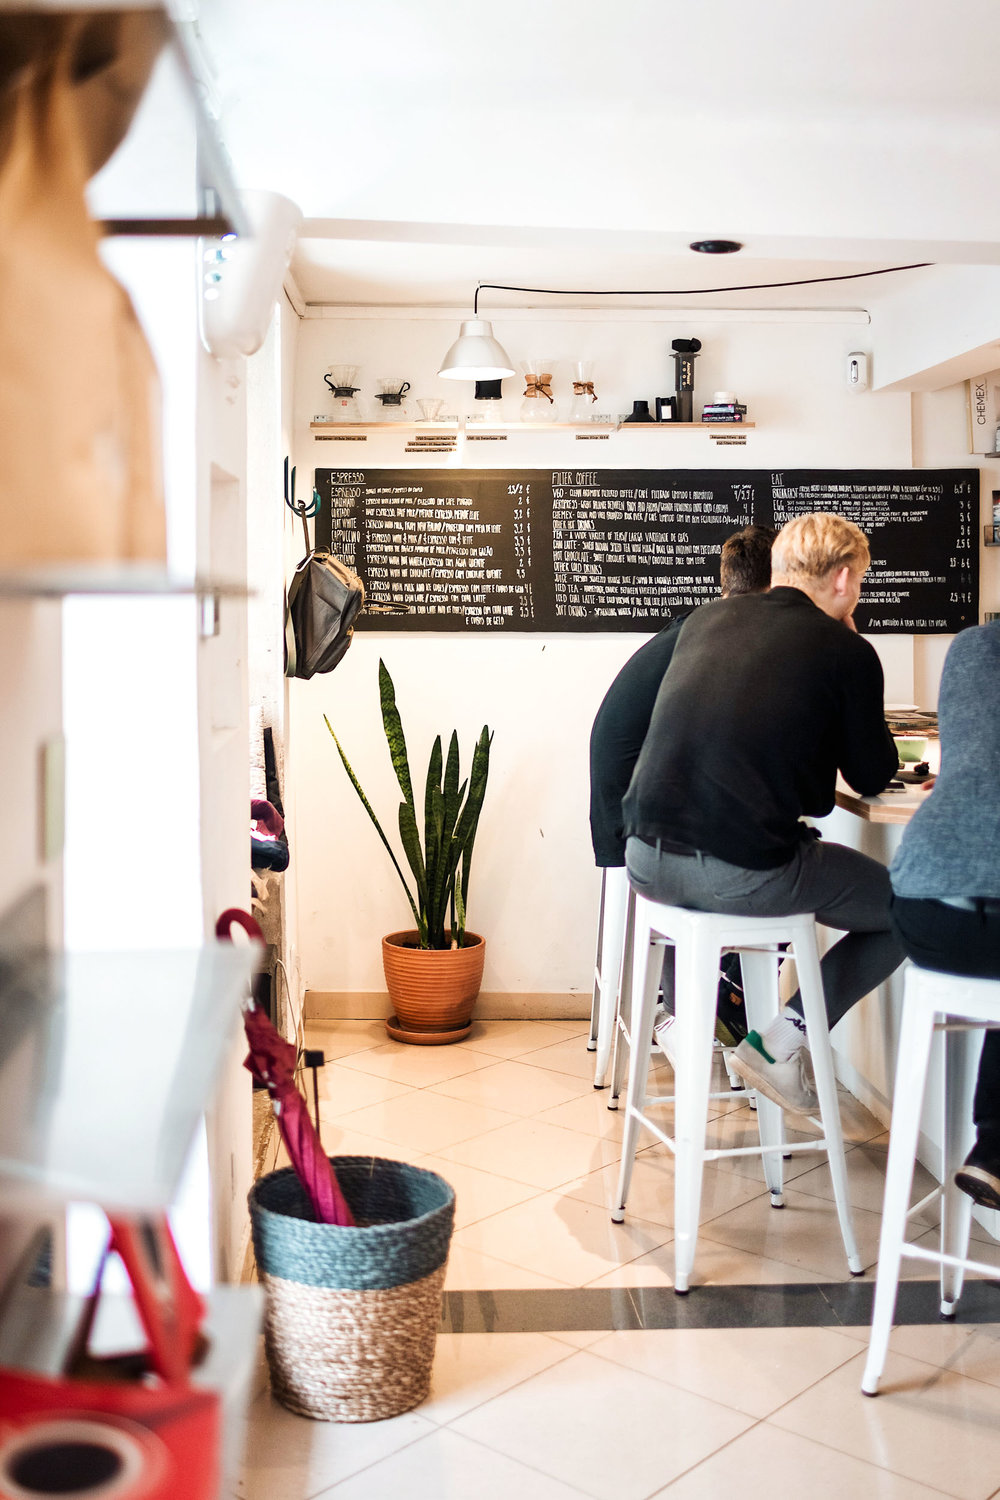 Copenhagen Coffee Lab is a Copenhagen-based coffee shop in Lisbon, Portugal